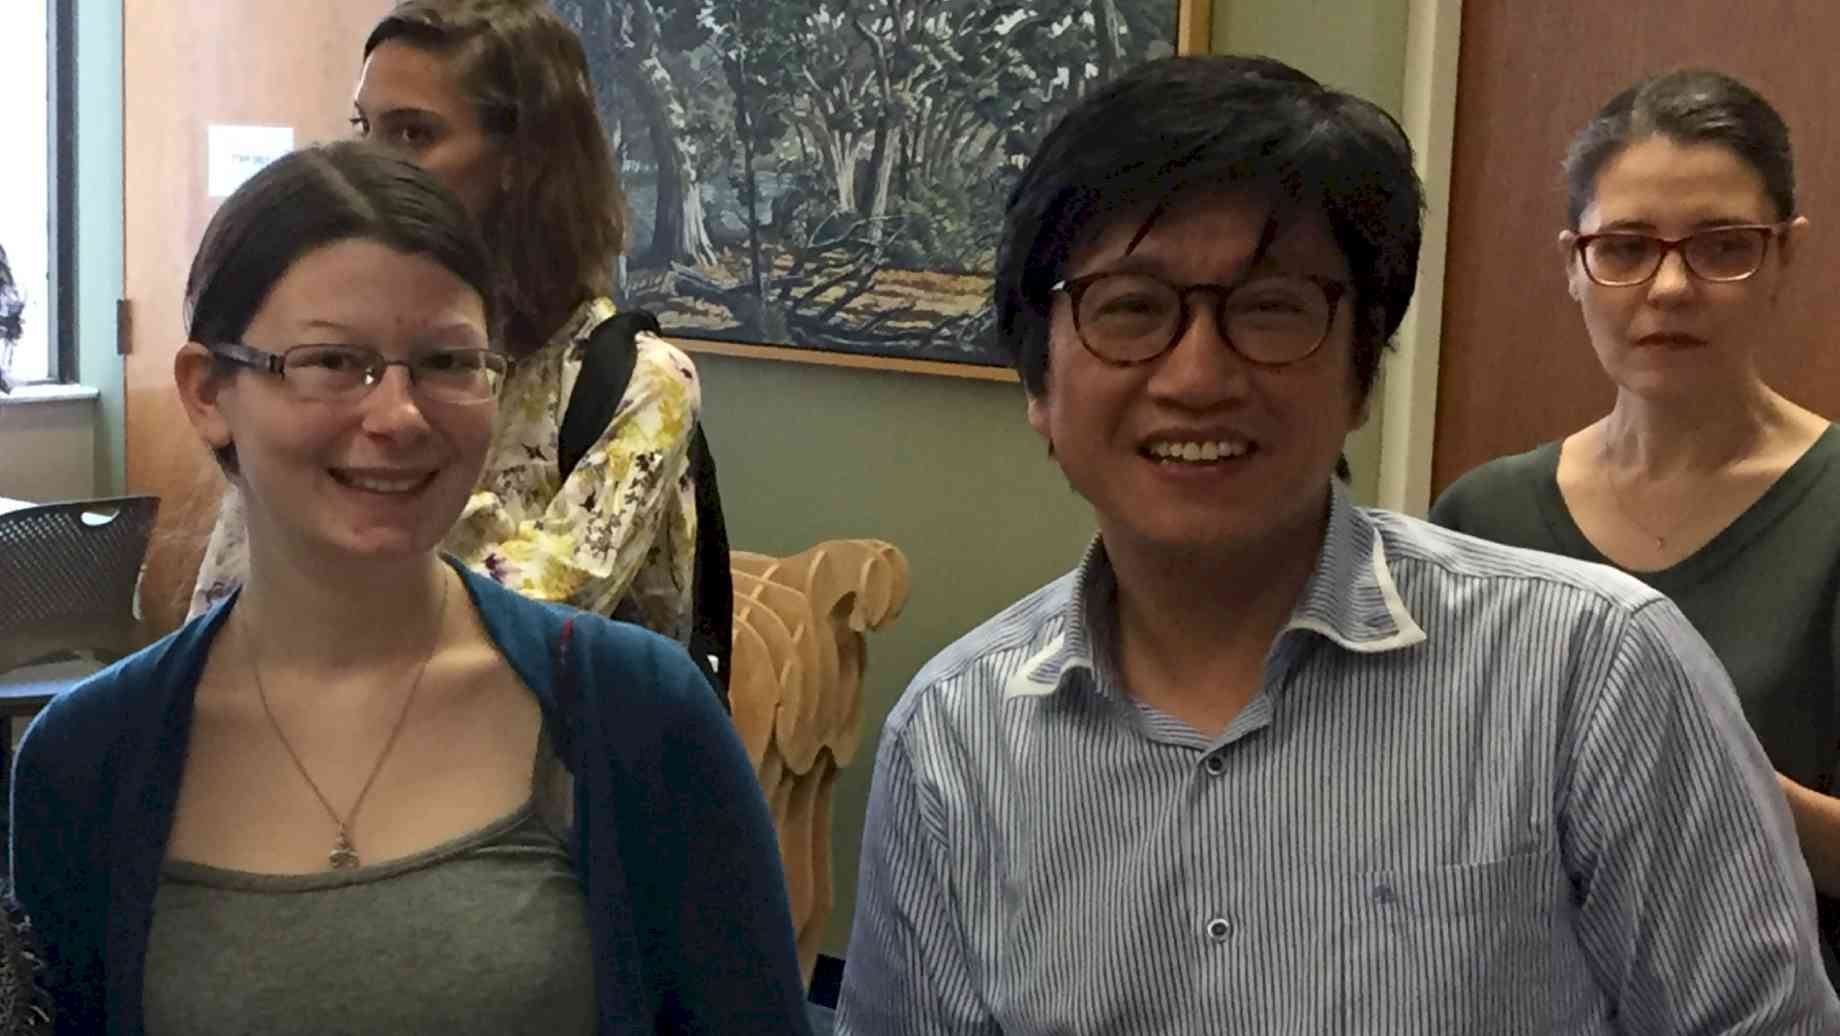 Prof. Lai and student at annual Cake & Conviviality reception